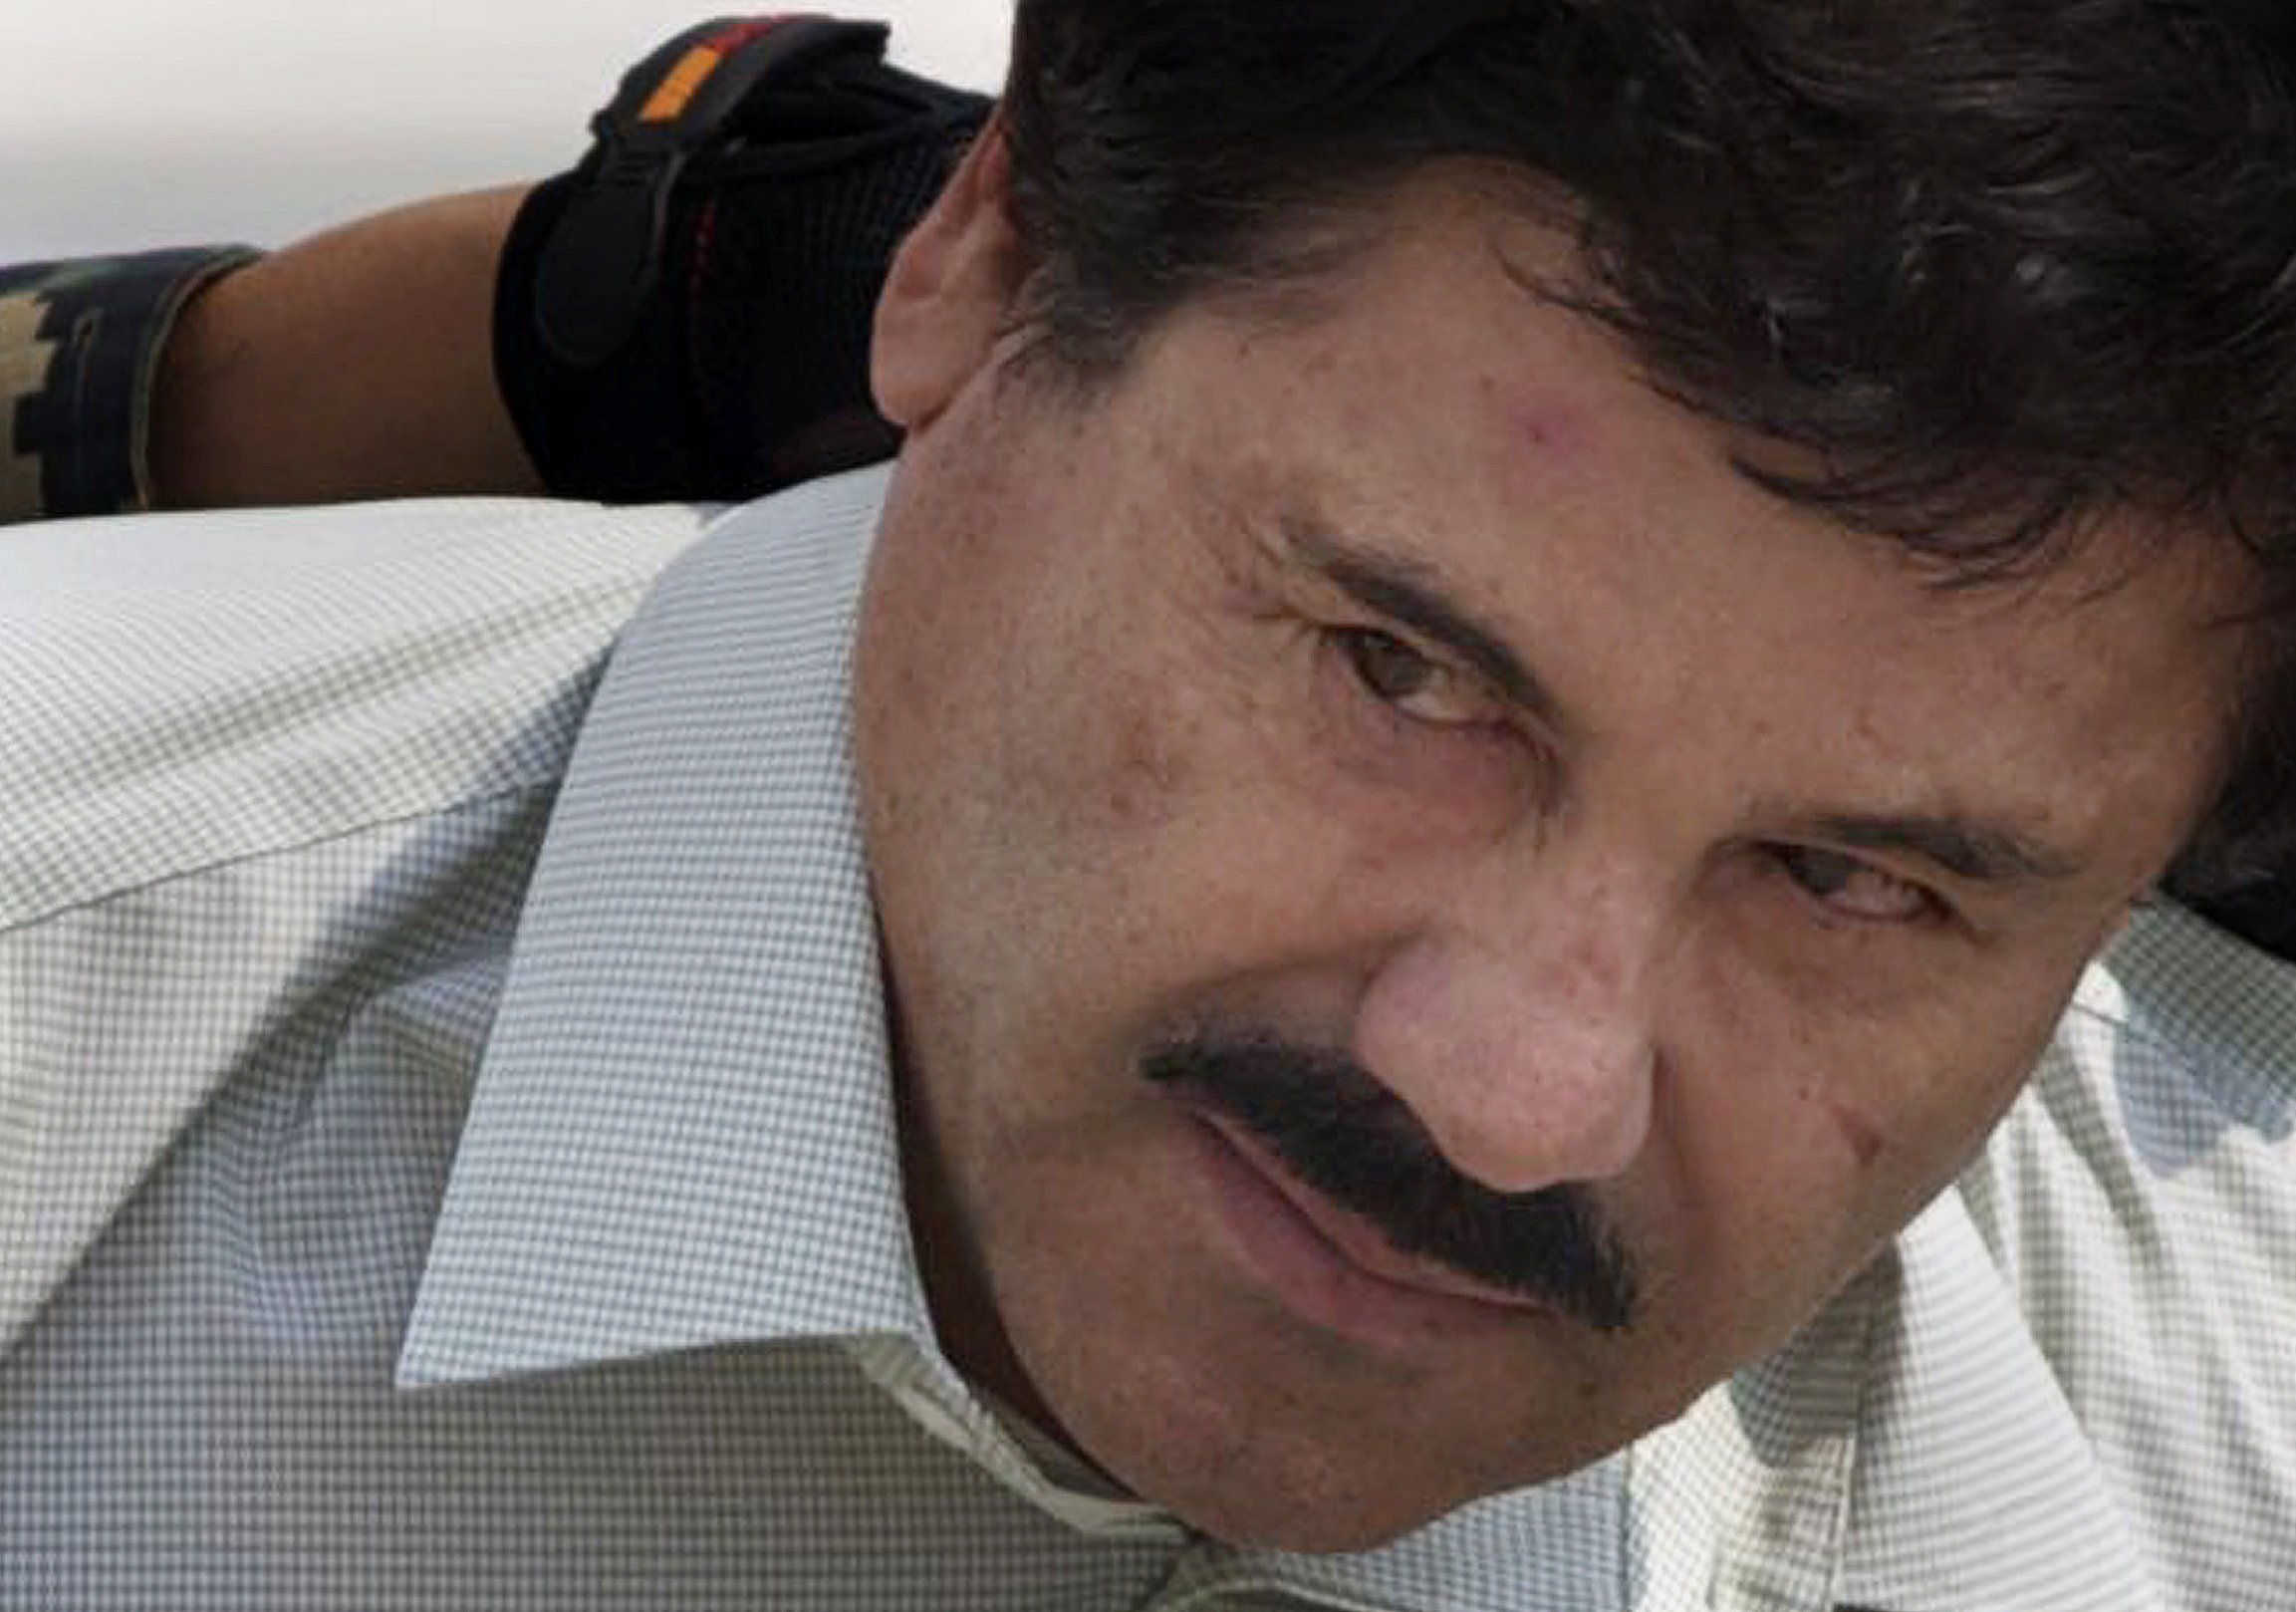 Watch US judge denies El Chapo Guzman a hug from wife in court during trial video